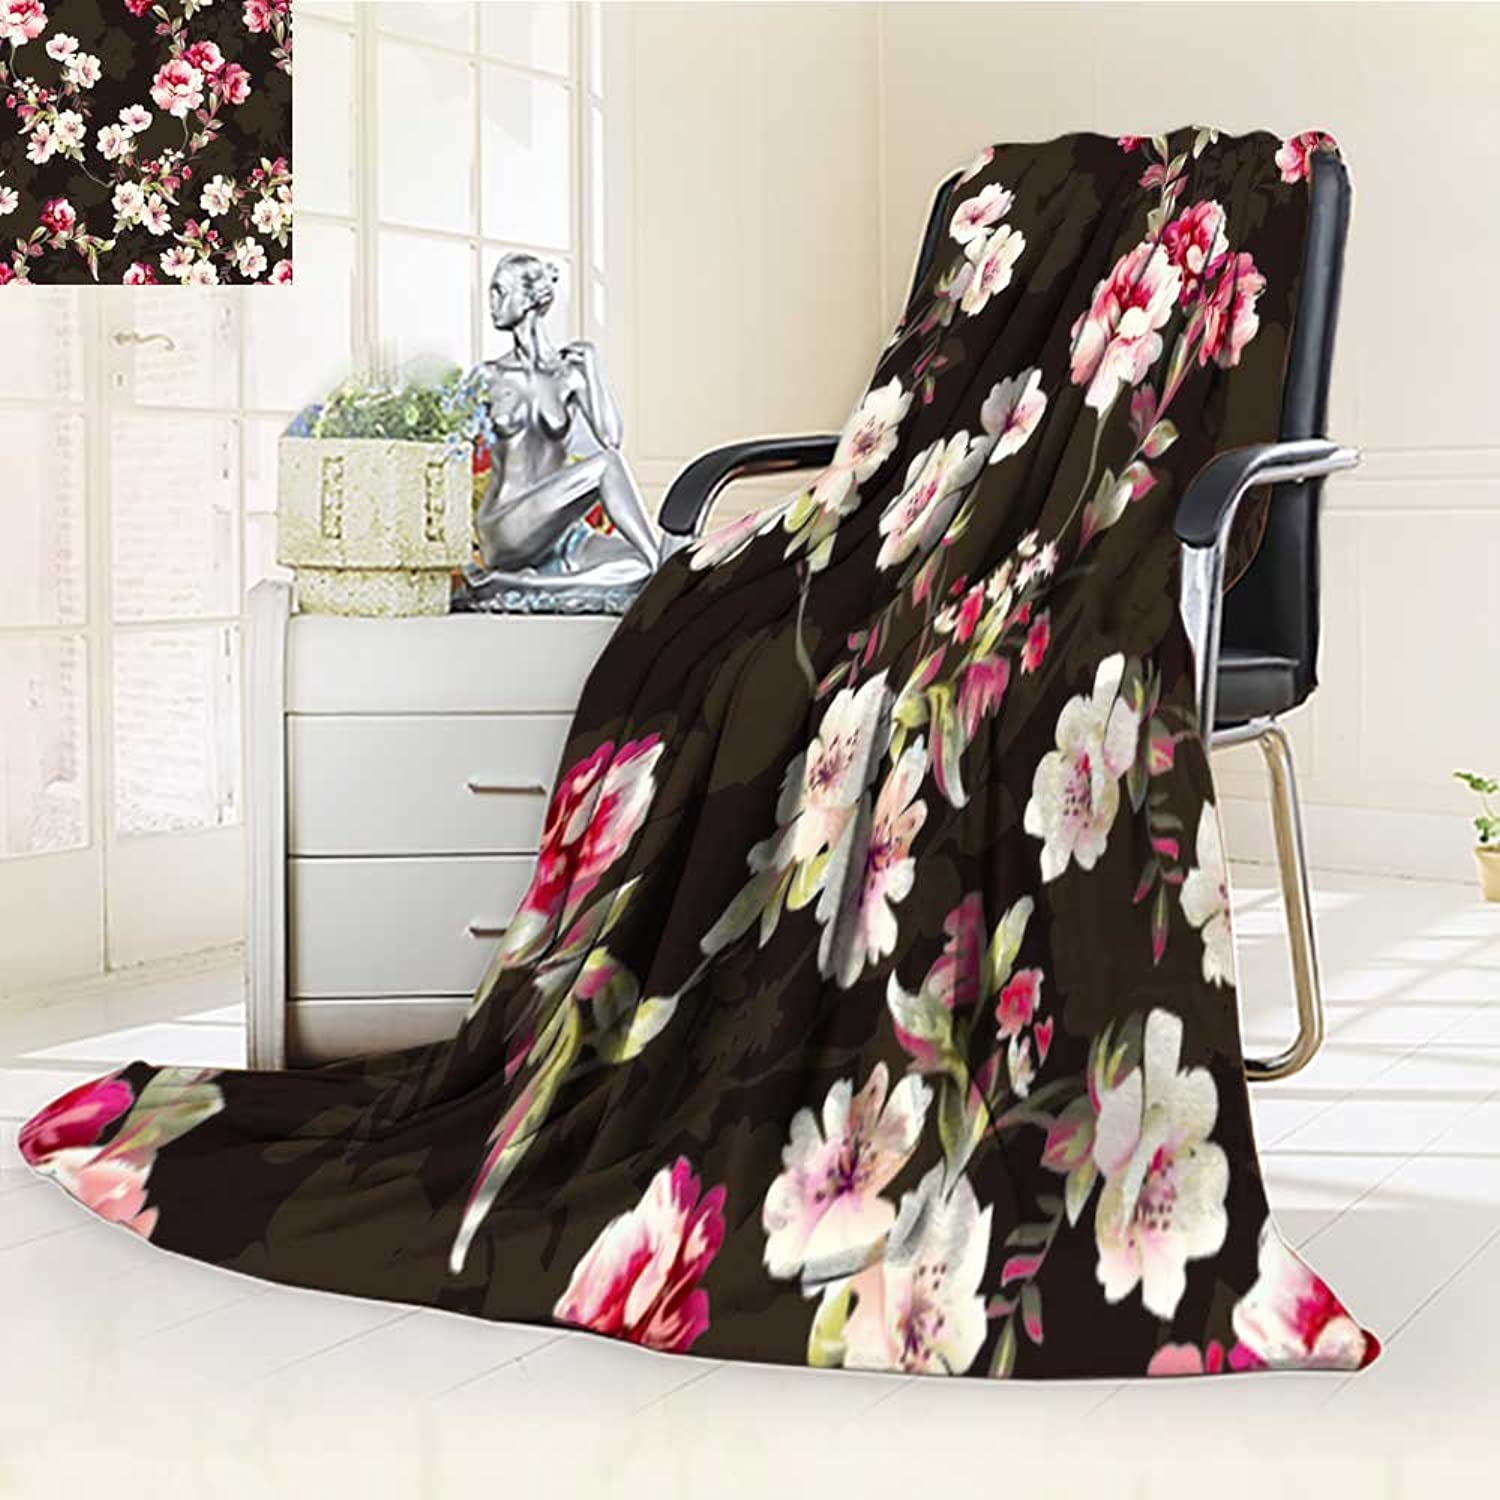 Decorative Throw Blanket UltraPlush Comfort Pattern with Spring Flowers Pattern with Spring Flowers with Branch on Black ba Soft, colorful, Oversized   Home, Couch, Outdoor, Travel Use(60 x 50 )